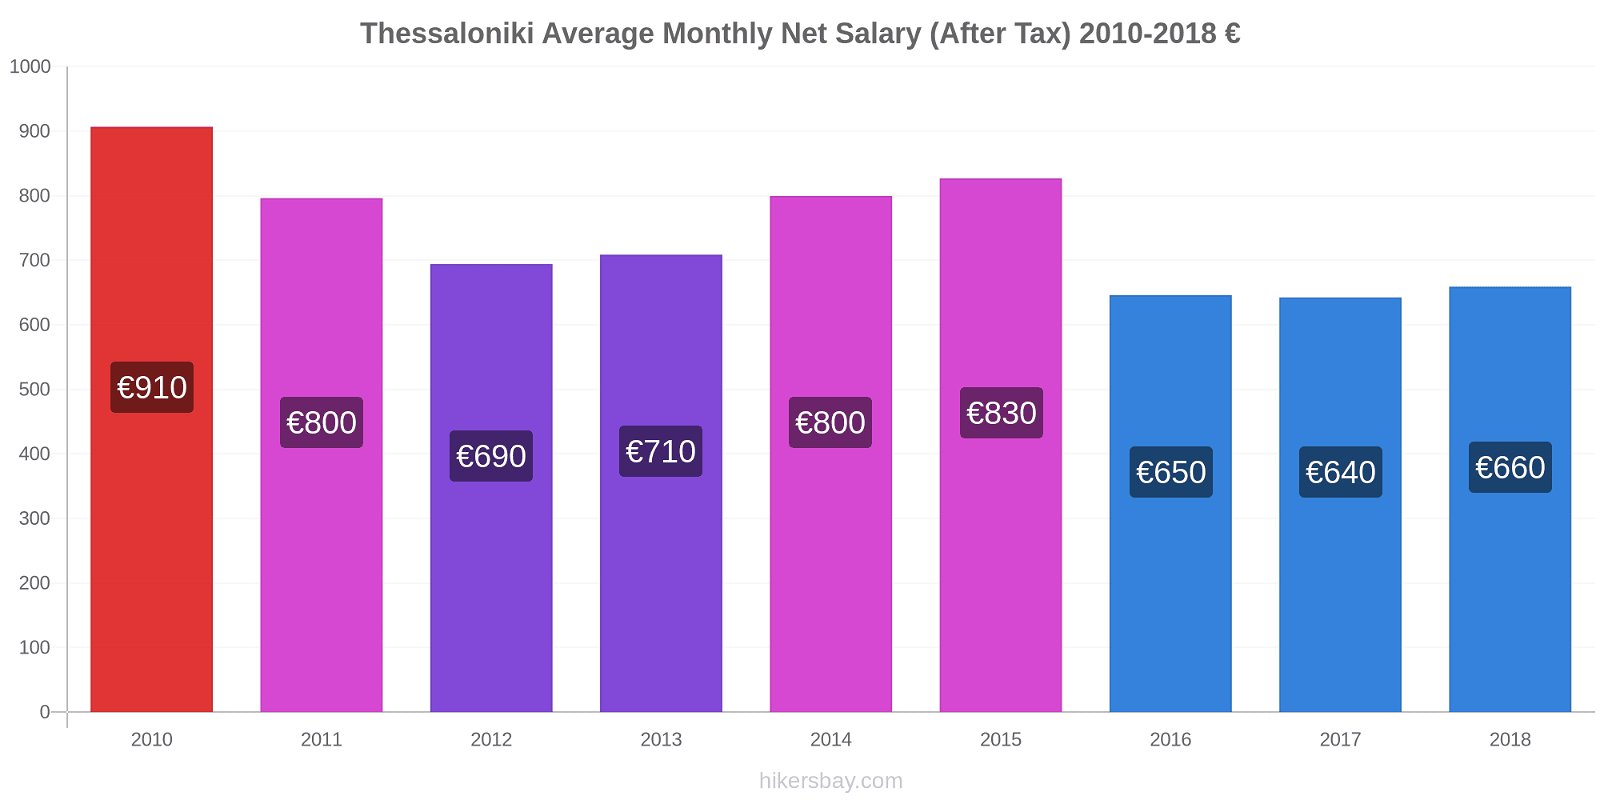 Thessaloniki price changes Average Monthly Net Salary (After Tax) hikersbay.com